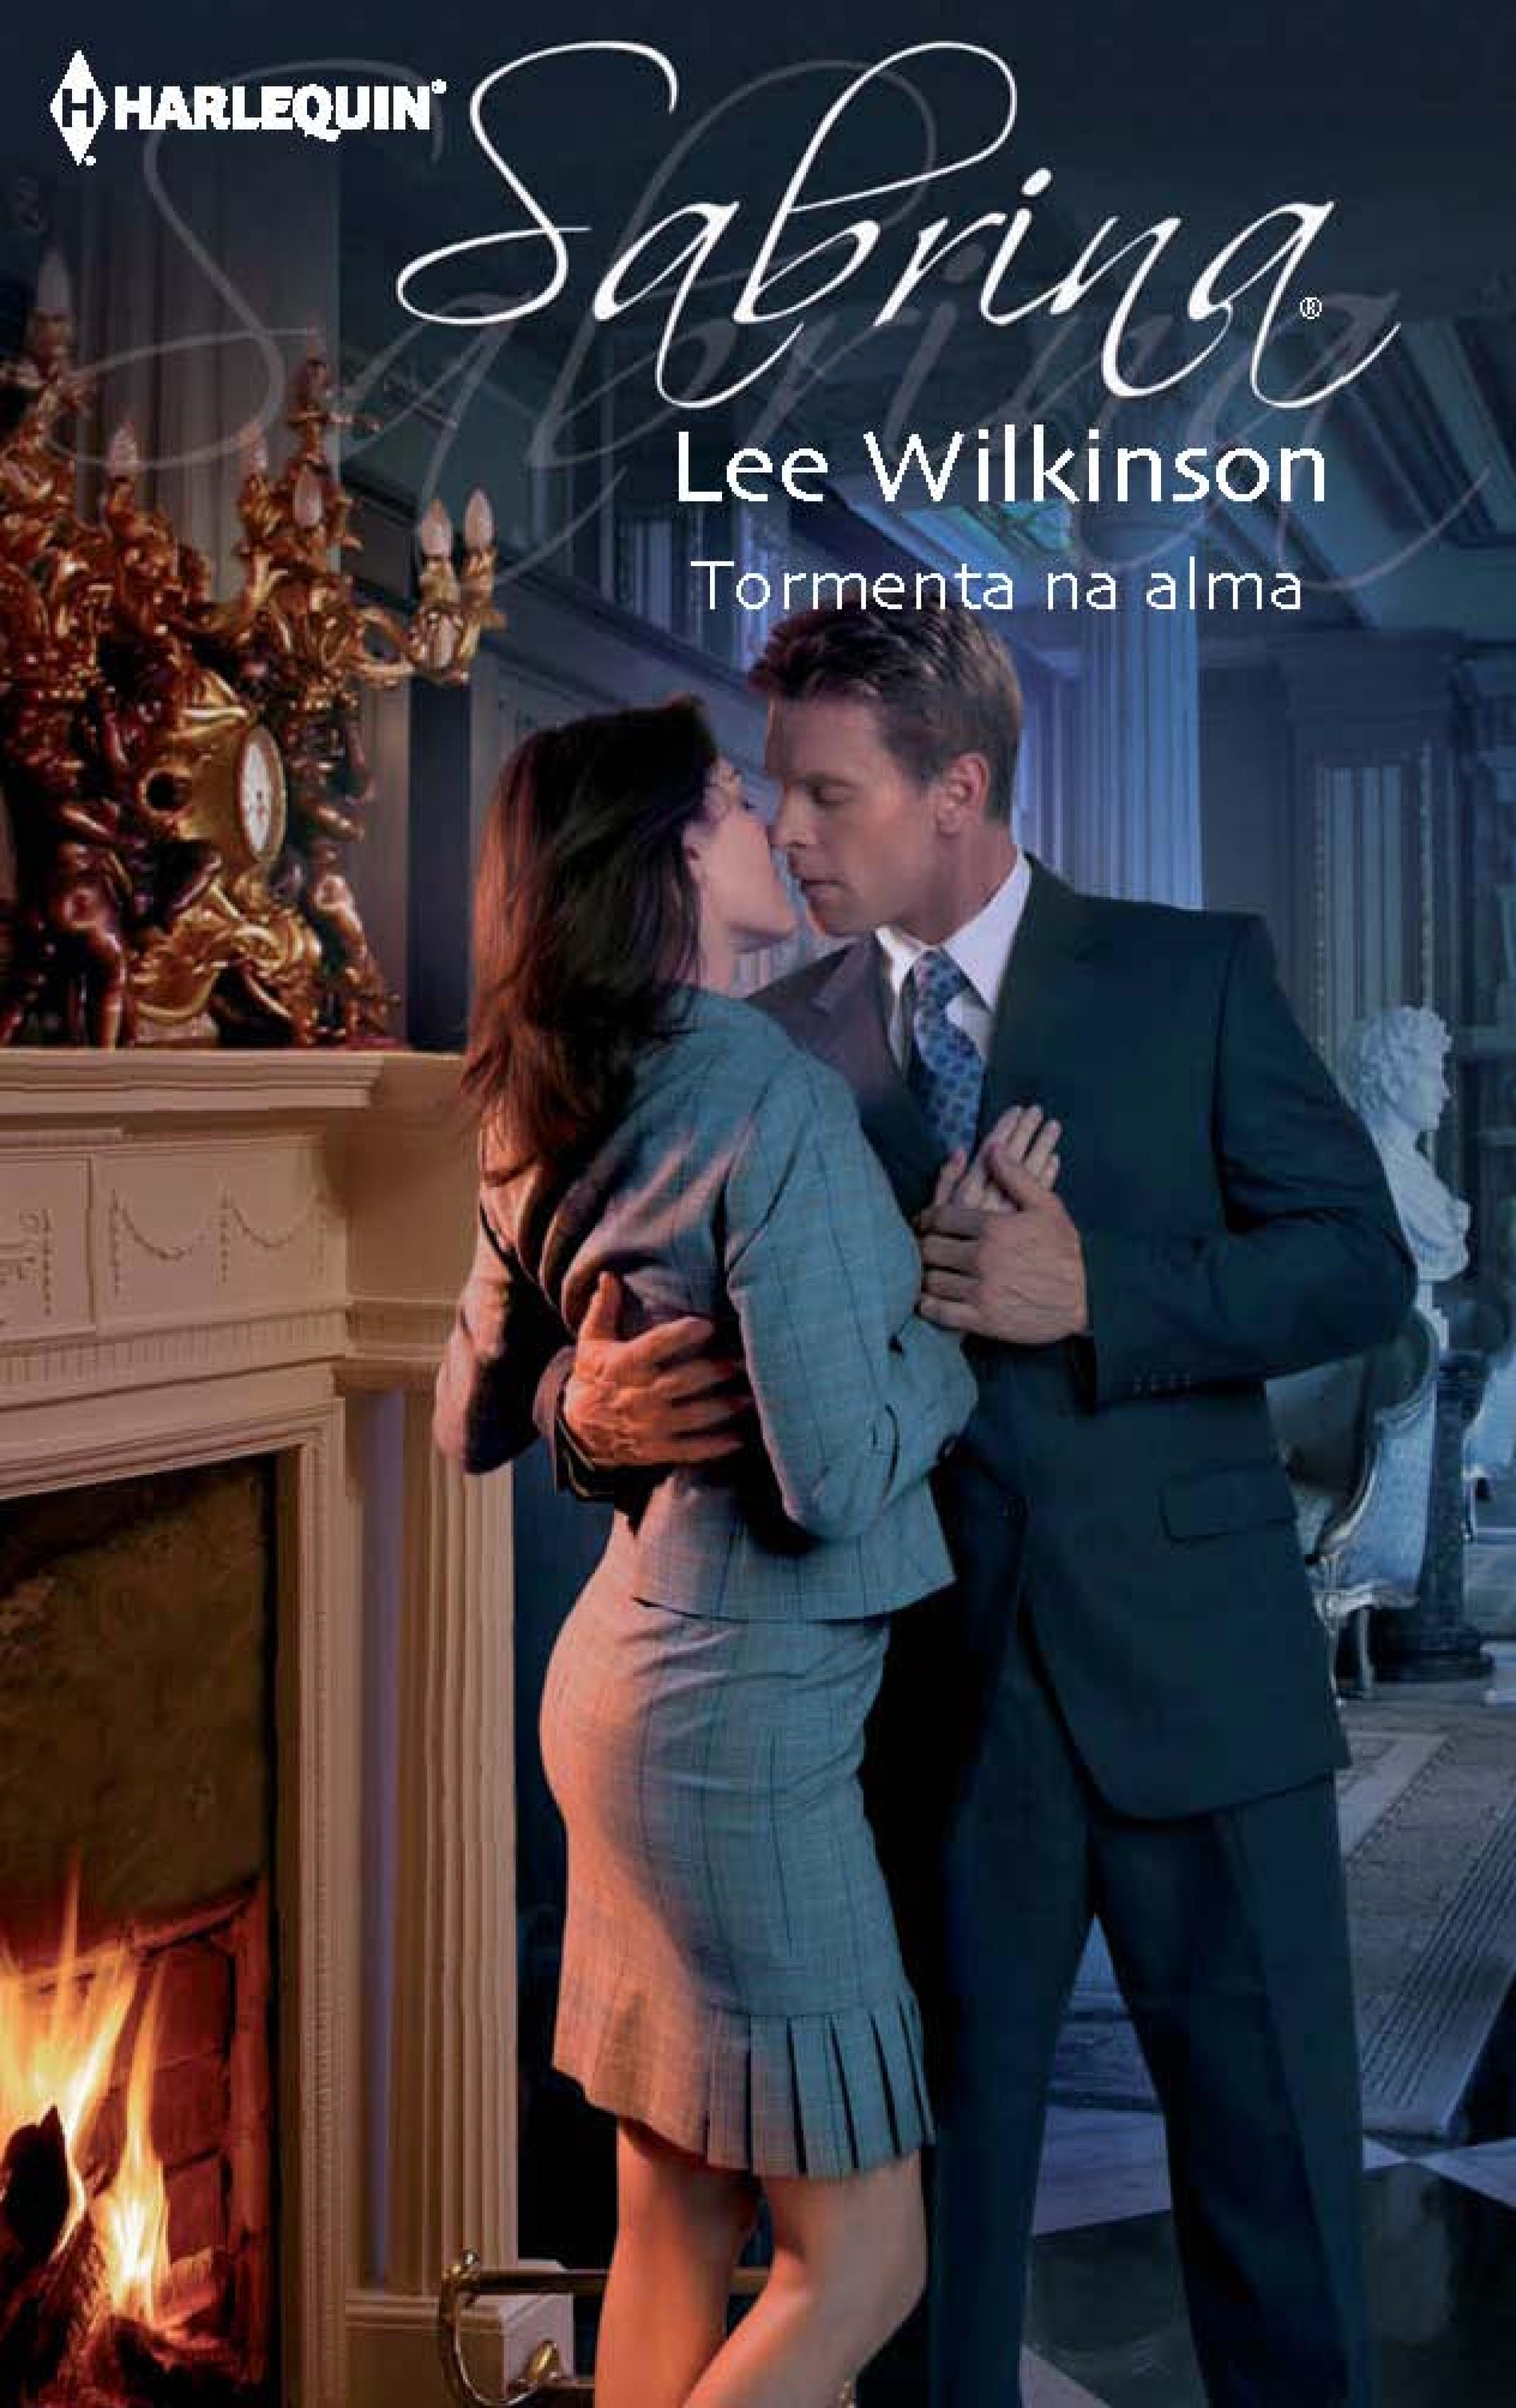 Lee Wilkinson Tormenta na alma lee wilkinson mistress against her will